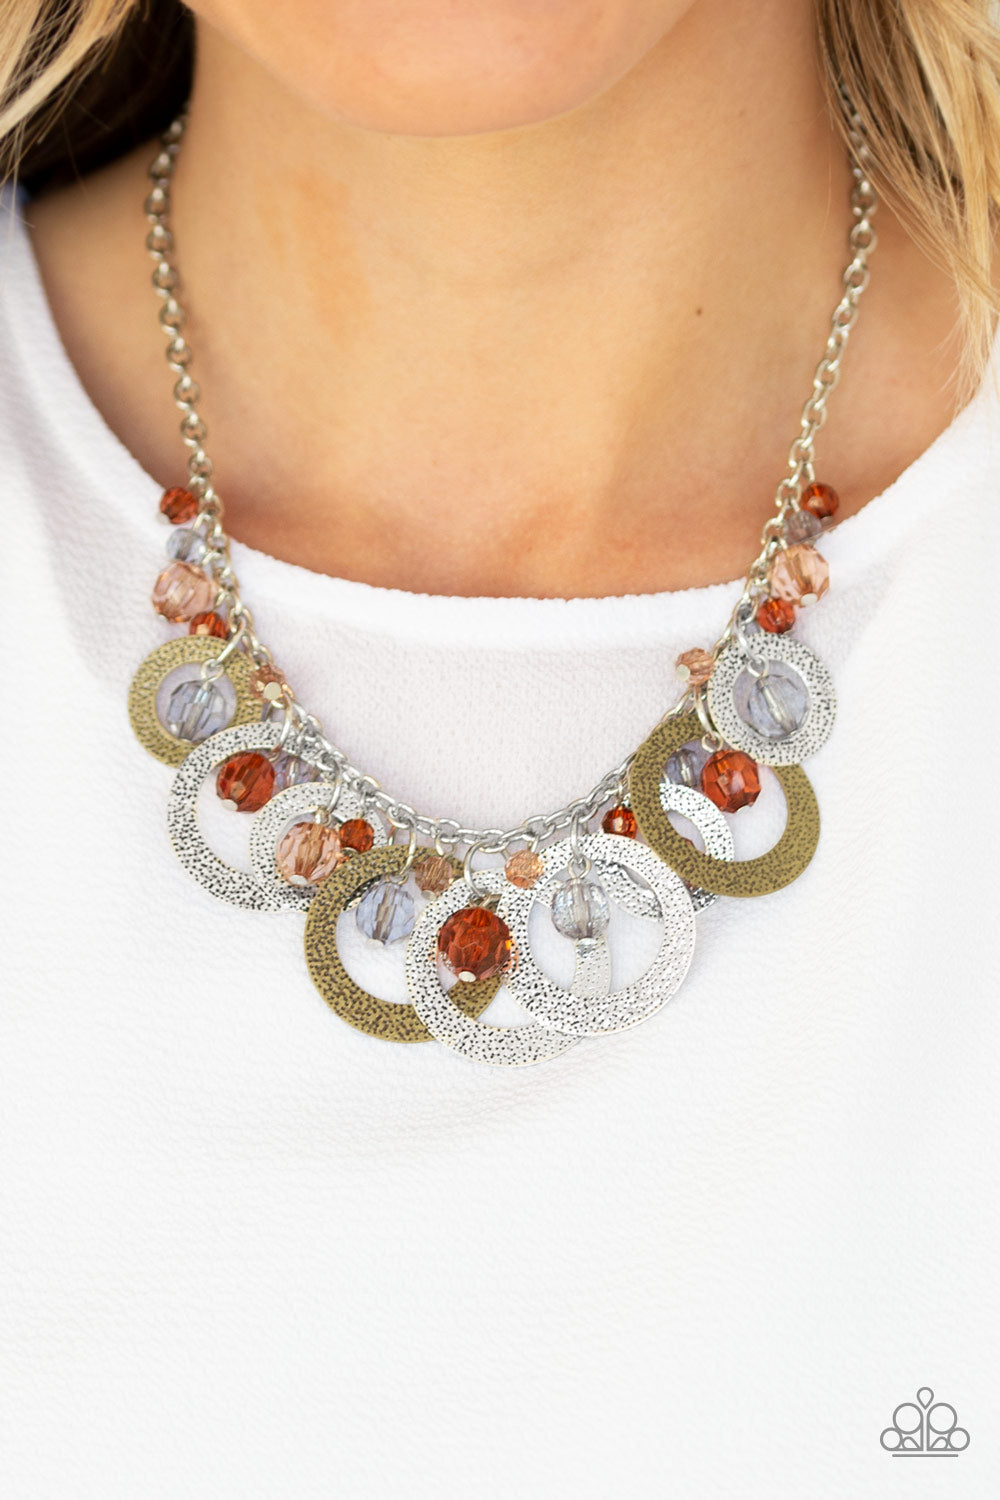 Turn It Up Multi Paparazzi Necklace - JewelTonez Jewelry